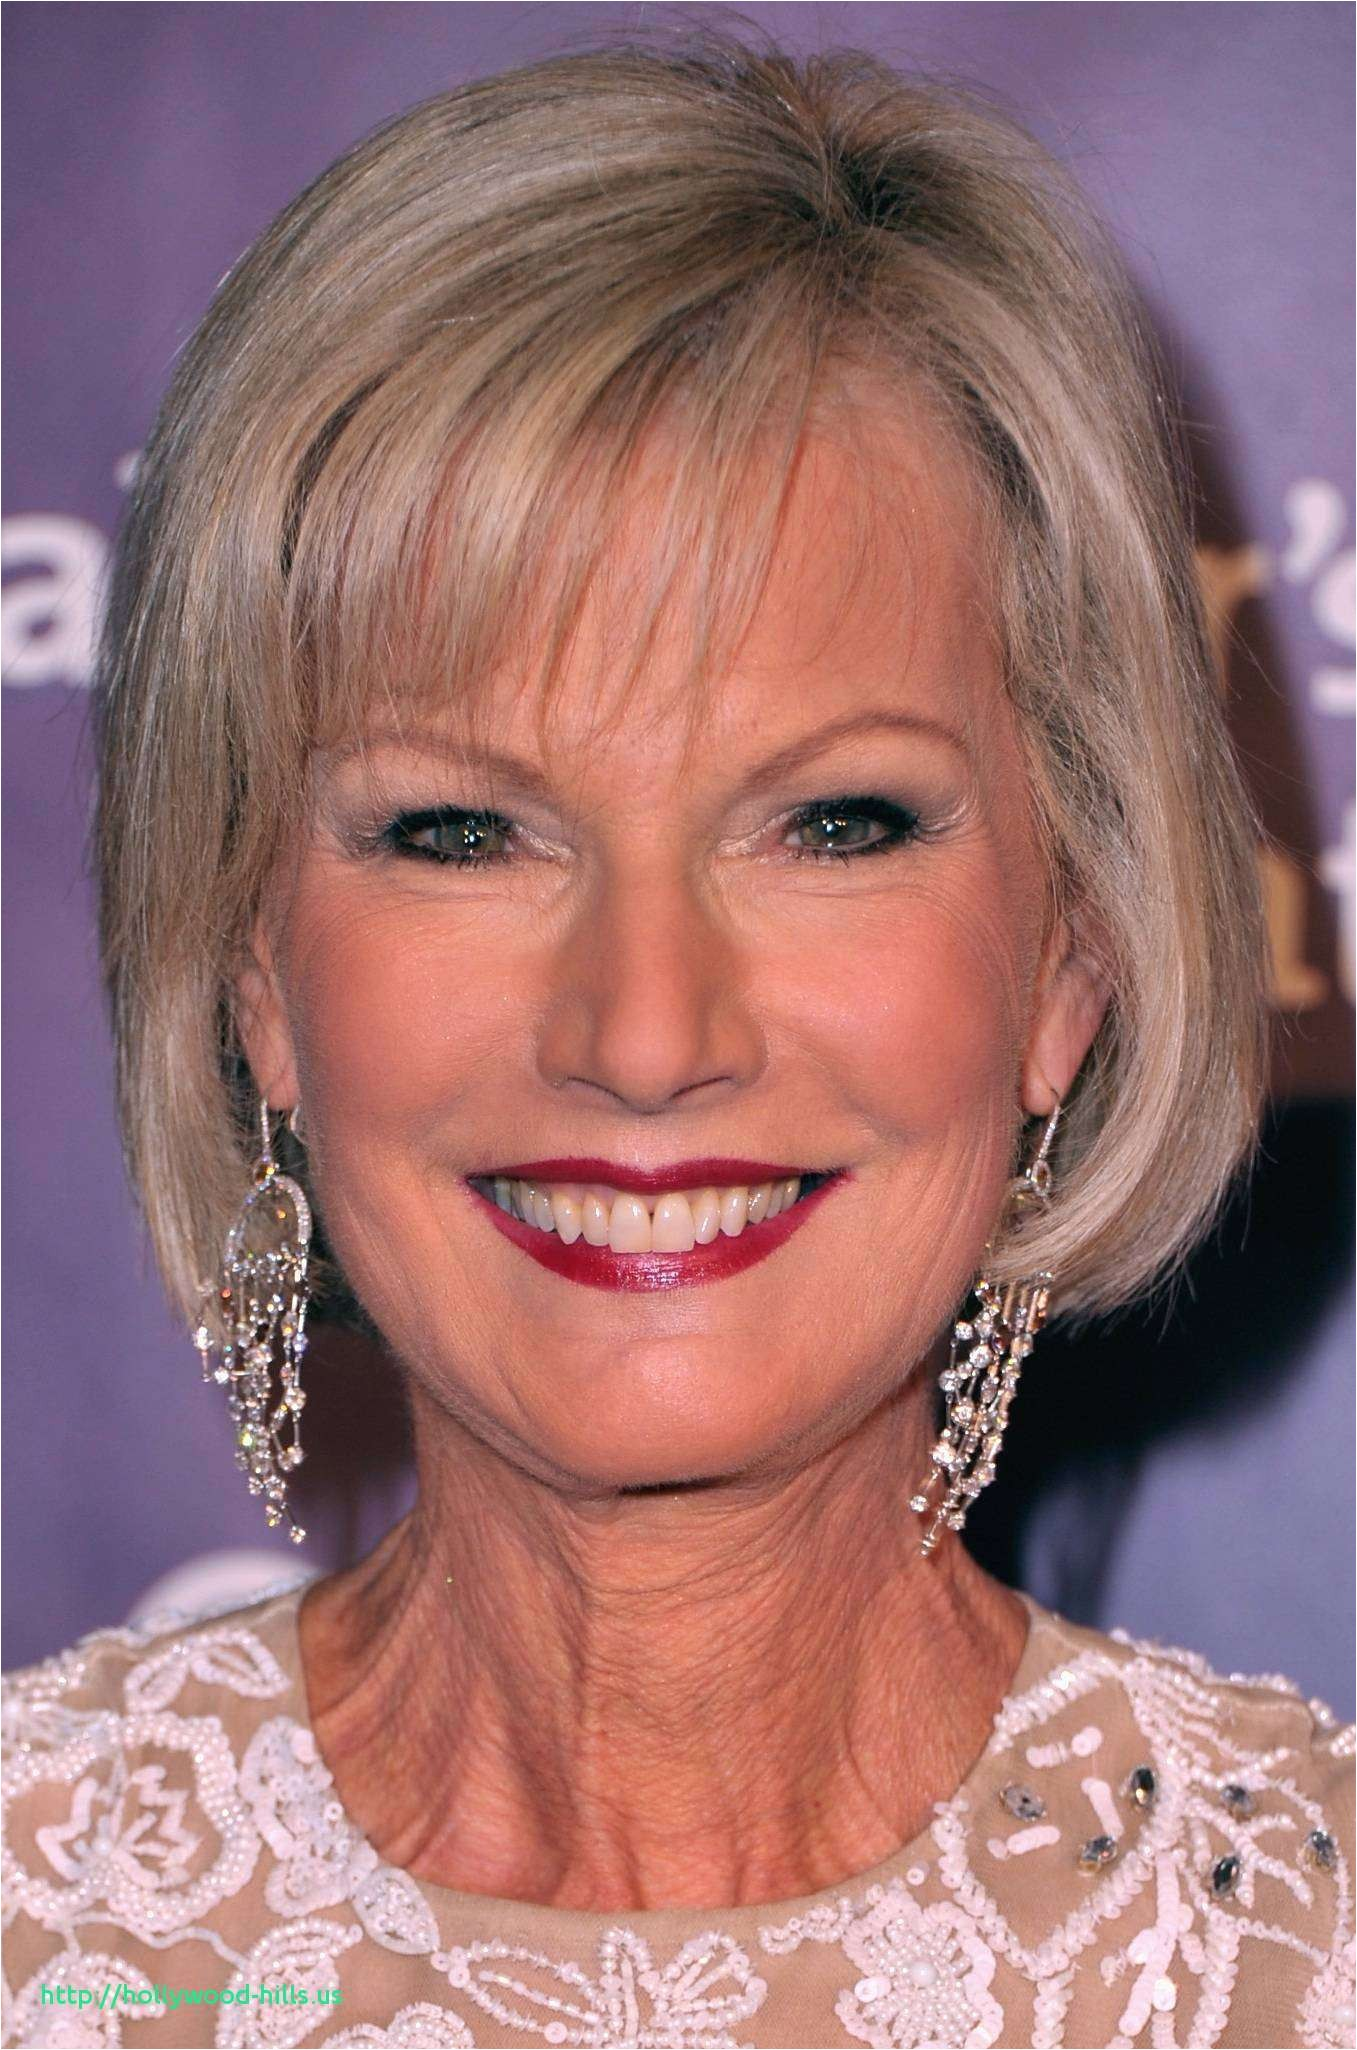 Hairstyles for Older Women with Thinning Hair Short Hairstyles for Older Women Lovely Straight Hairstyles for